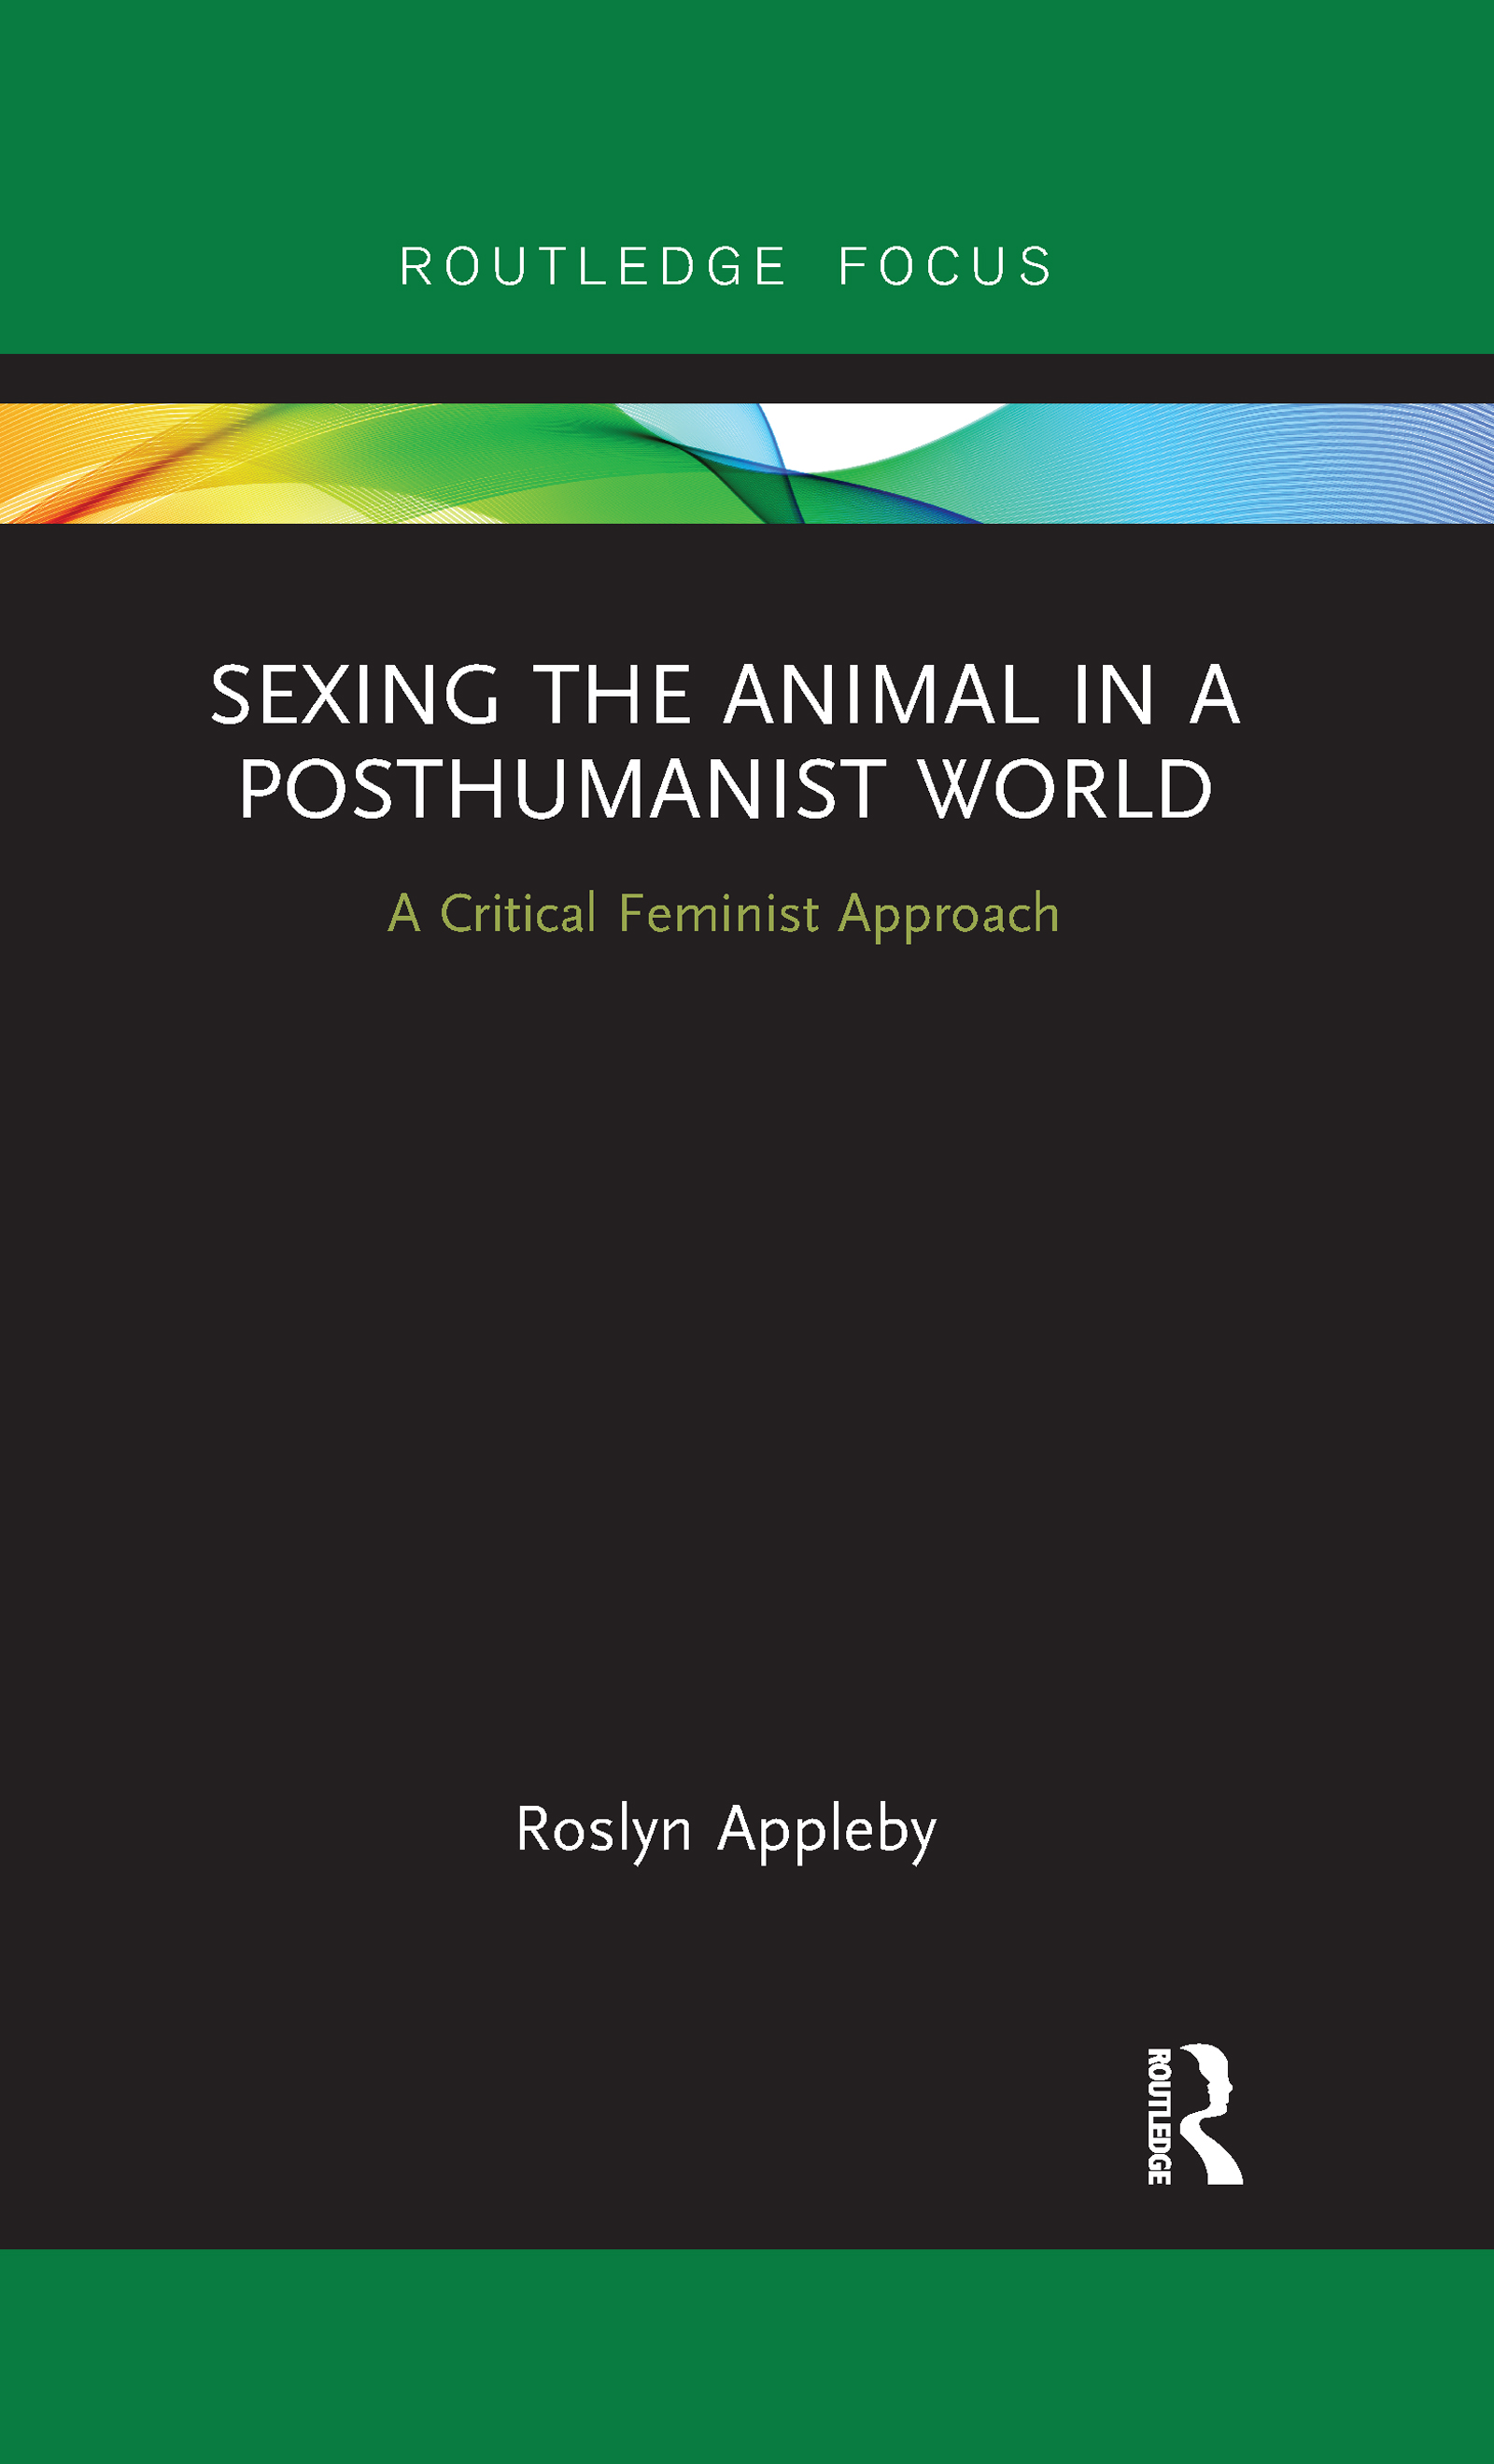 Sexing the Animal in a Post-Humanist World